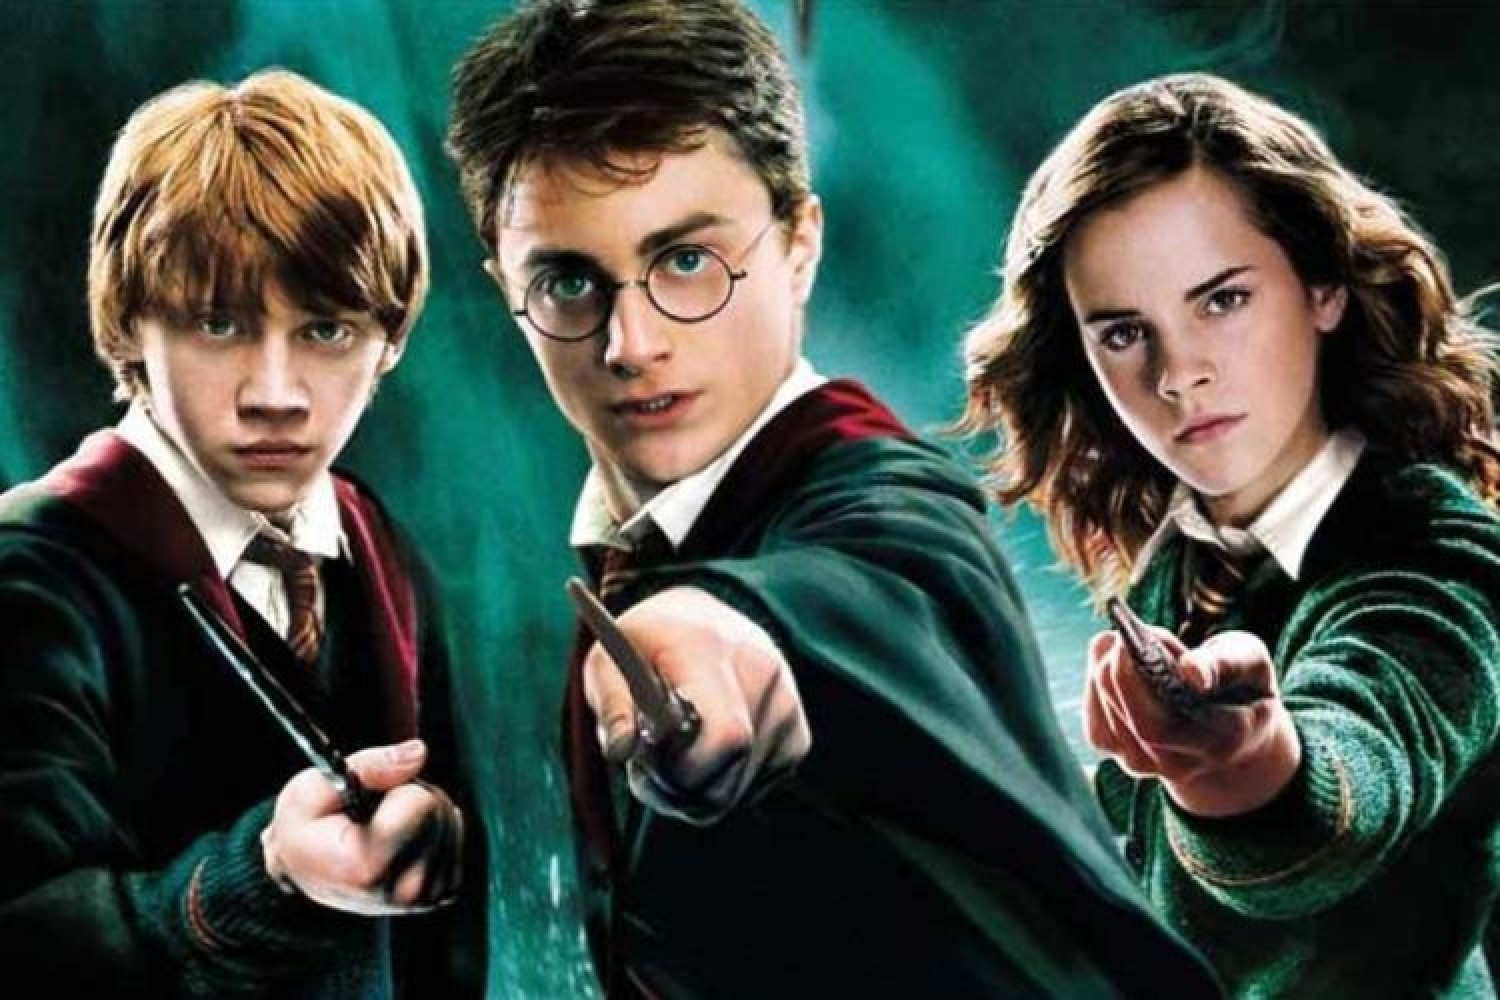 In viaggio virtuale con Harry Potter: evento in streaming con sorprese per i fan